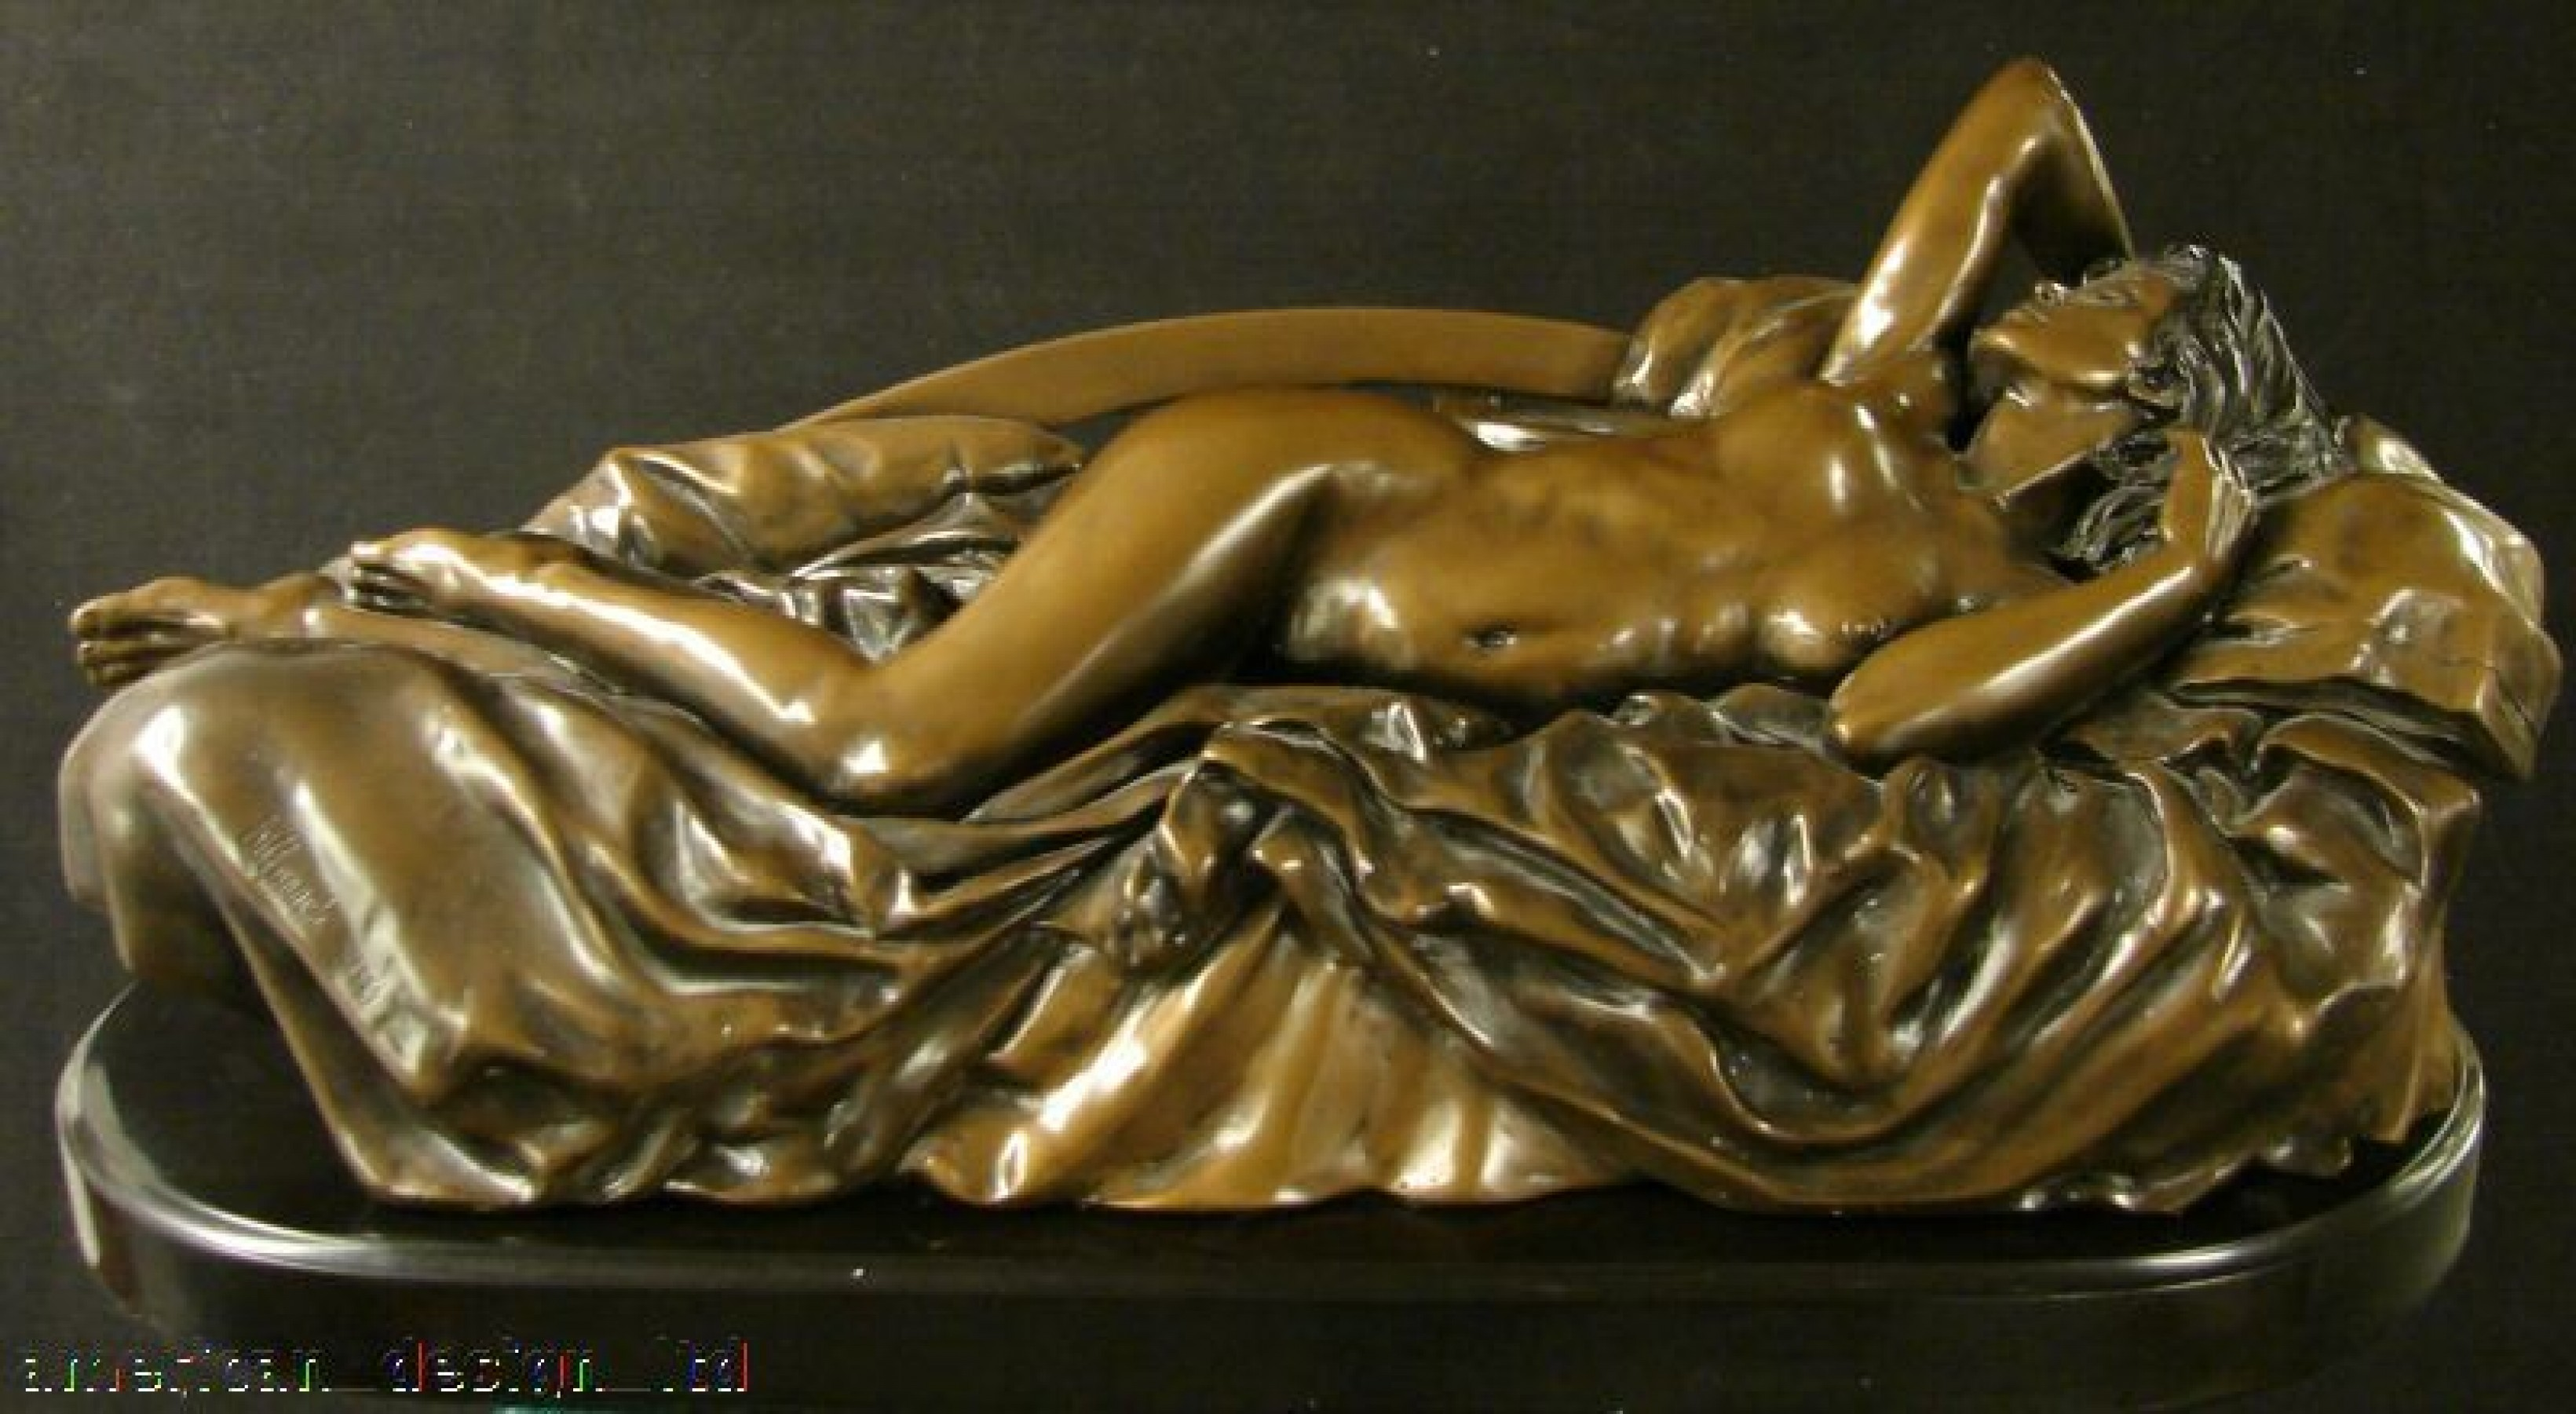 Tranquility Bronze Sculpture 1994 65 in